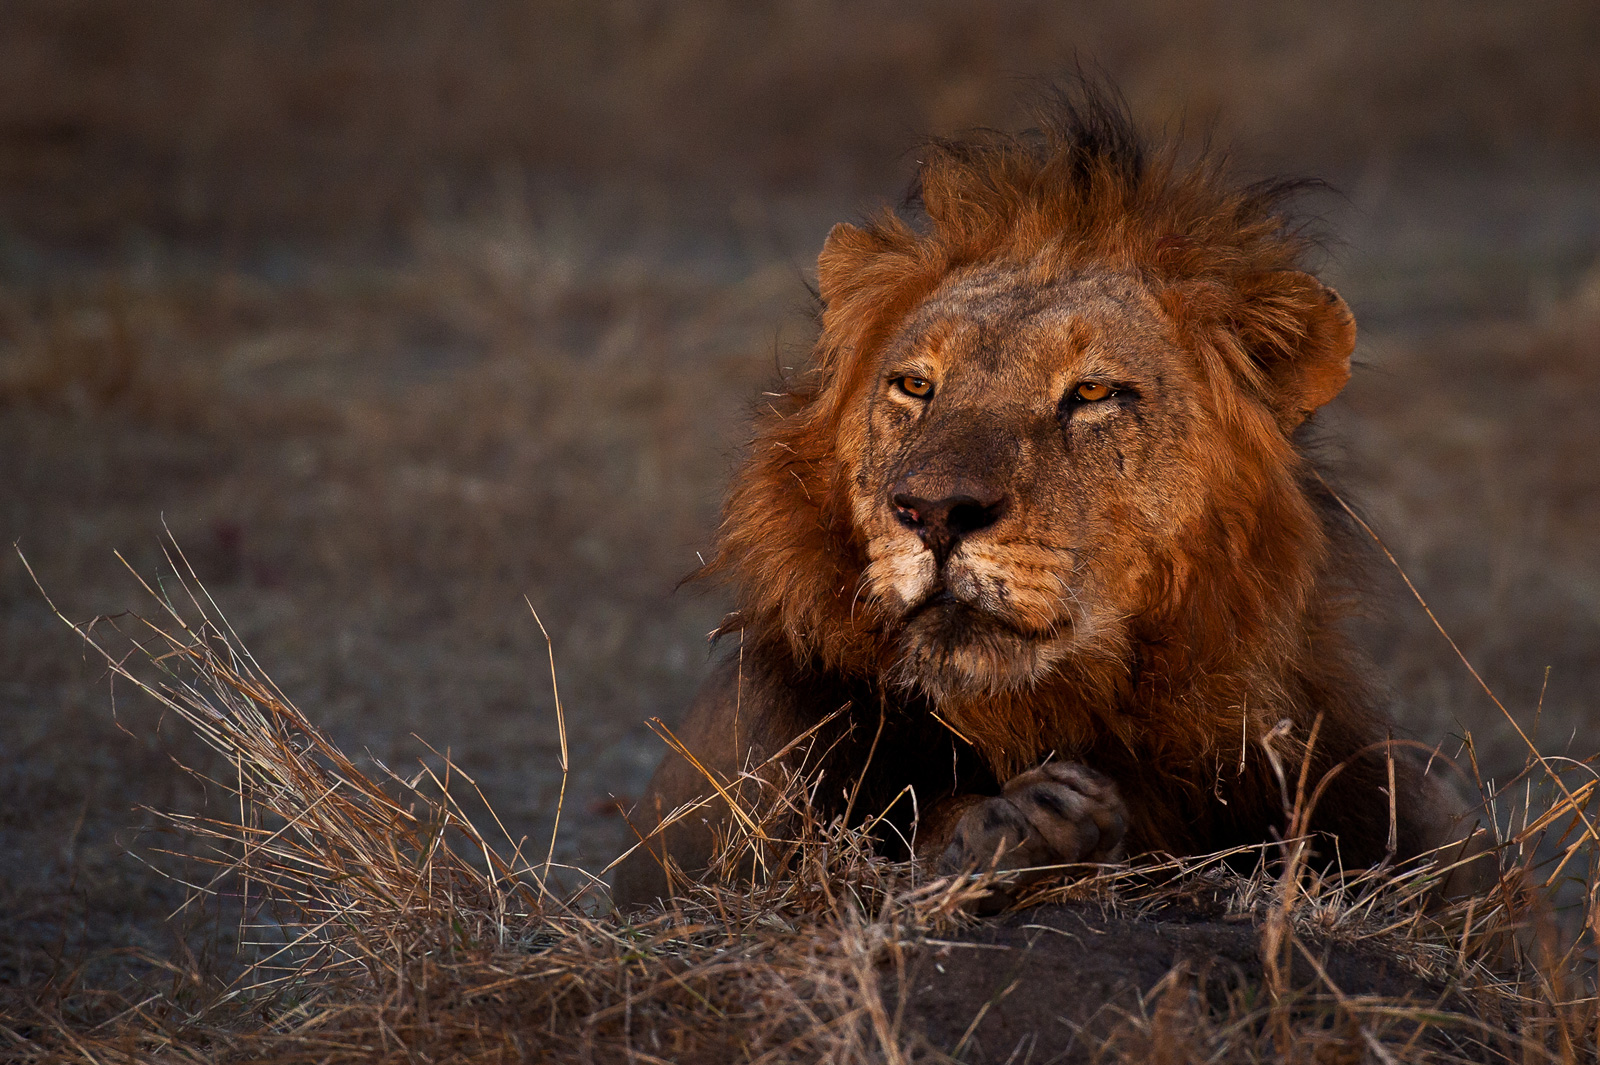 lion-canned-hunting-africa-geographic-©WimVorster